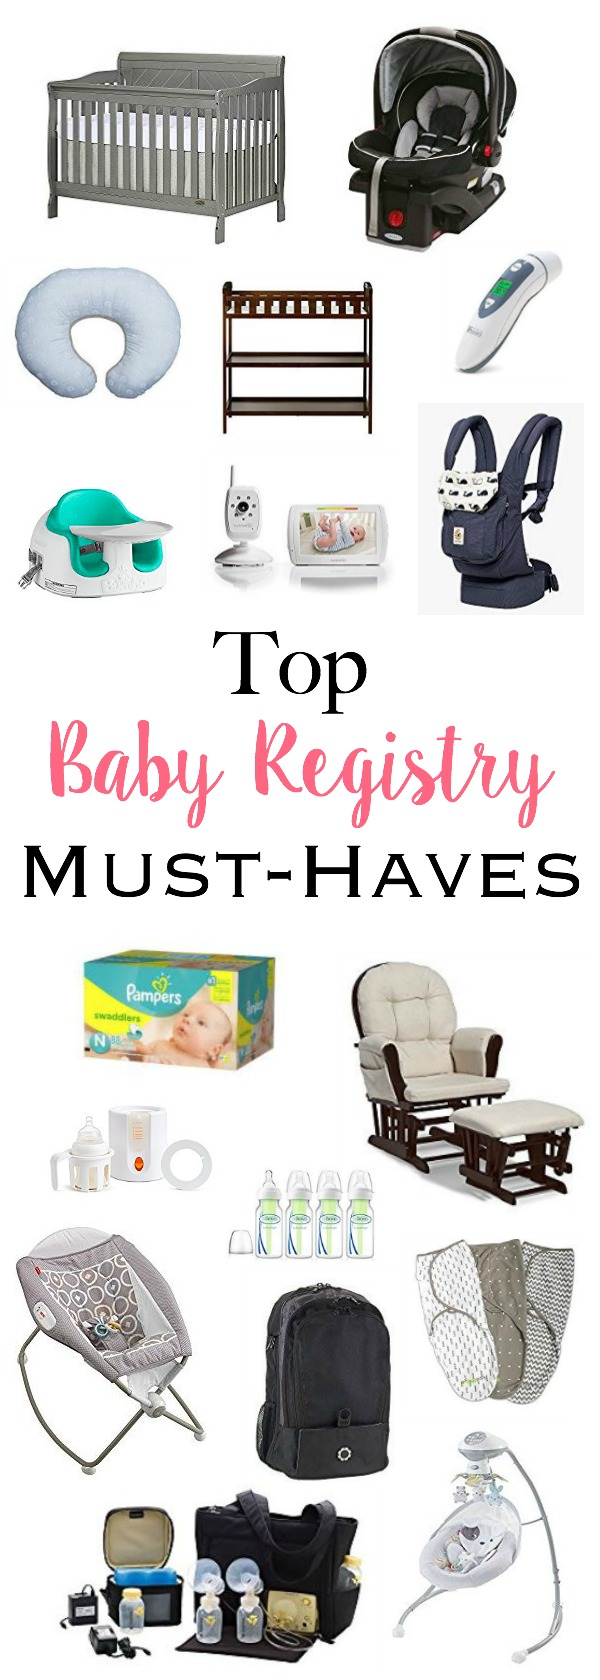 Top Baby Registry Must-Haves - Best products and essentials every mom needs on her registry | www.mamabearbliss.com